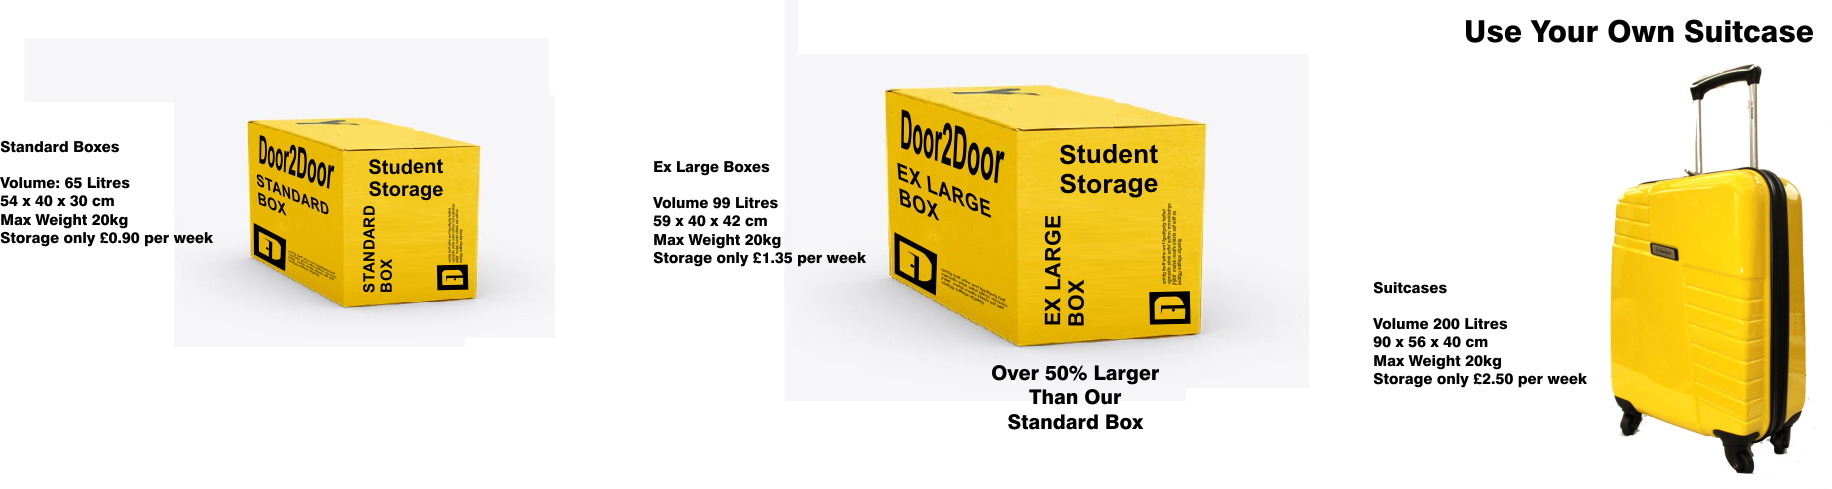 Student Storage Options